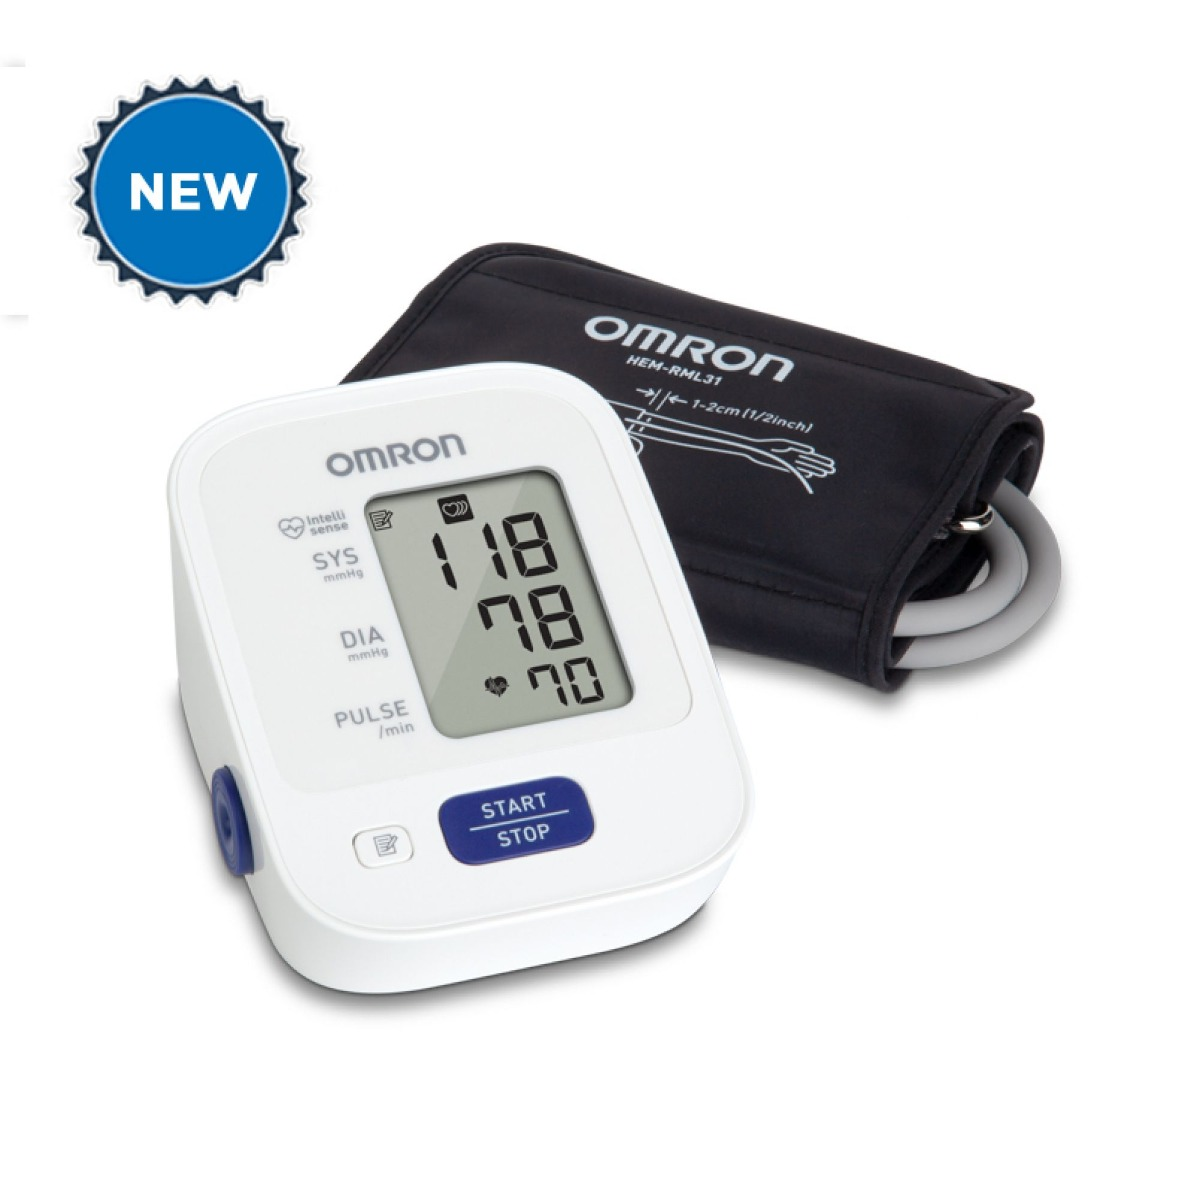 New white Omron 3 series arm blood pressure monitor machine with digital display and cuff